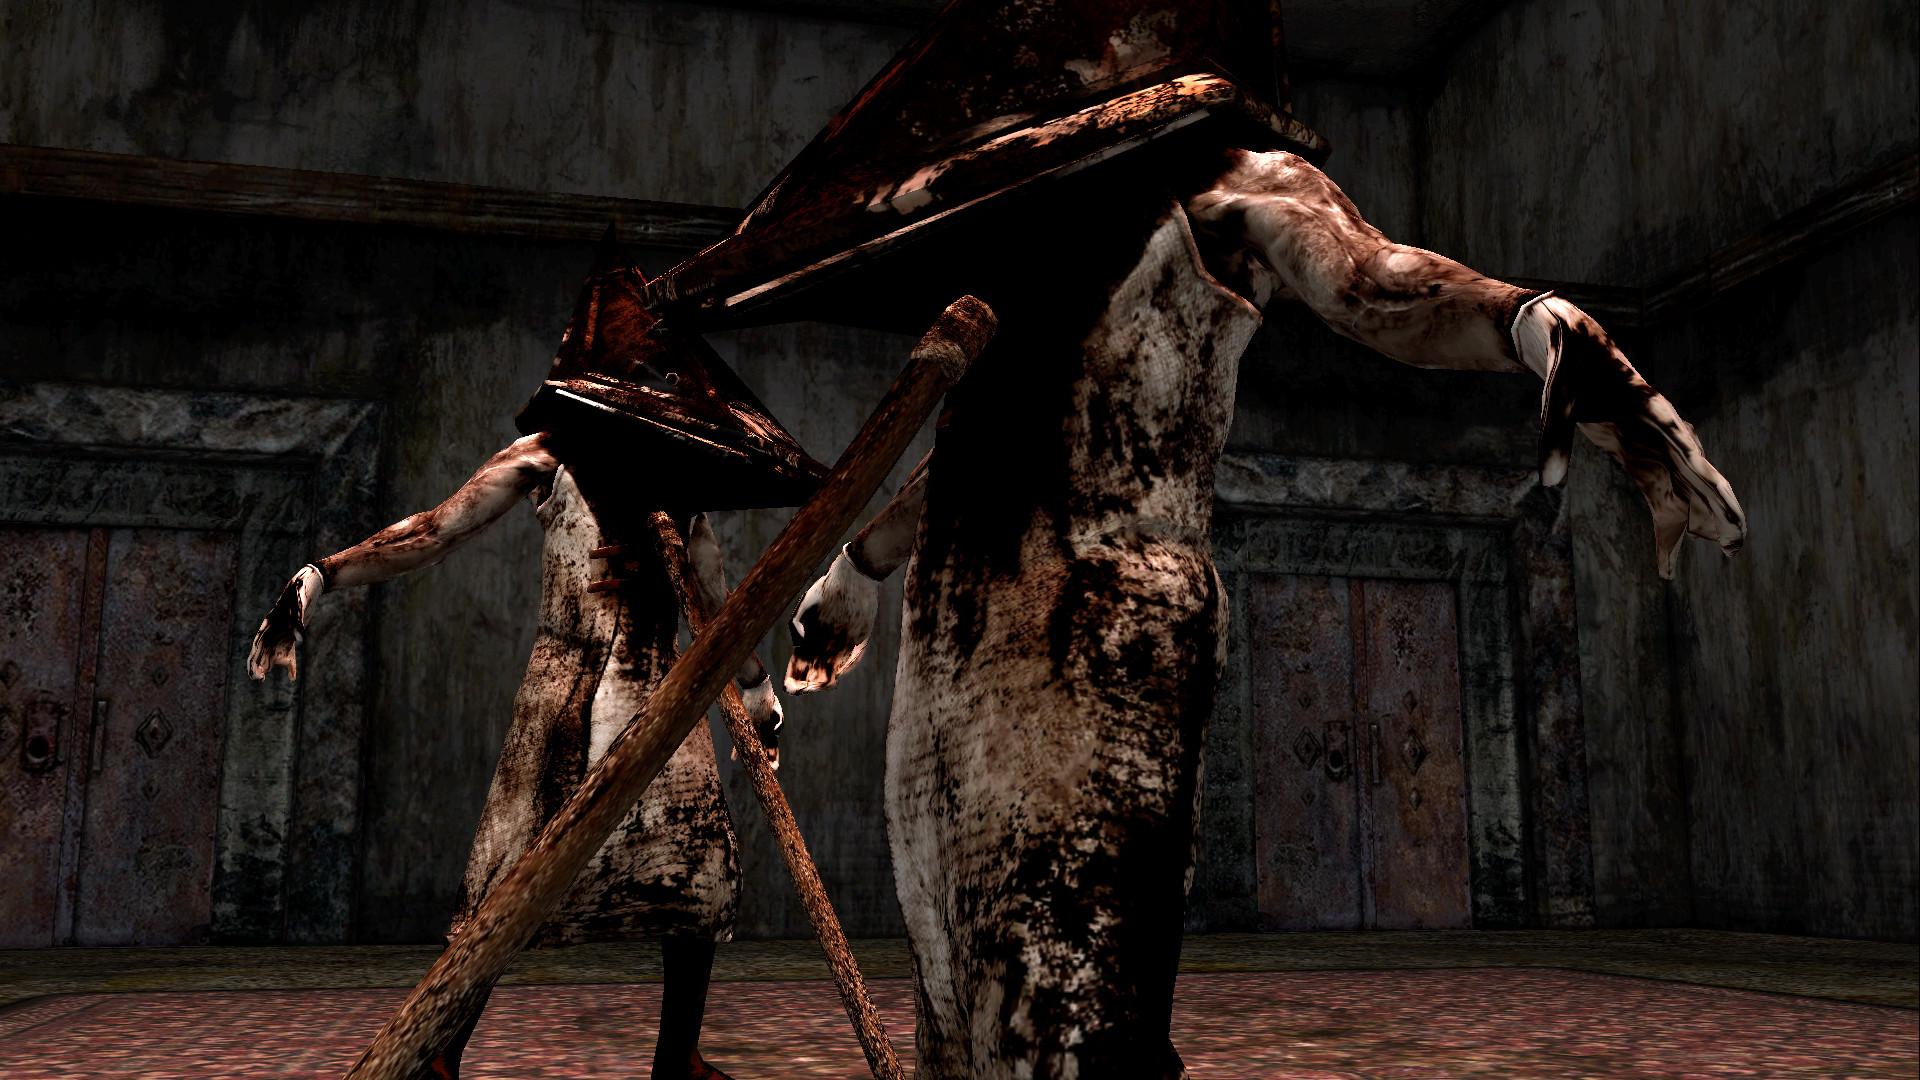 Silent hill 2 pyramid head wallpaper 59 images - Pyramid head boss fight ...